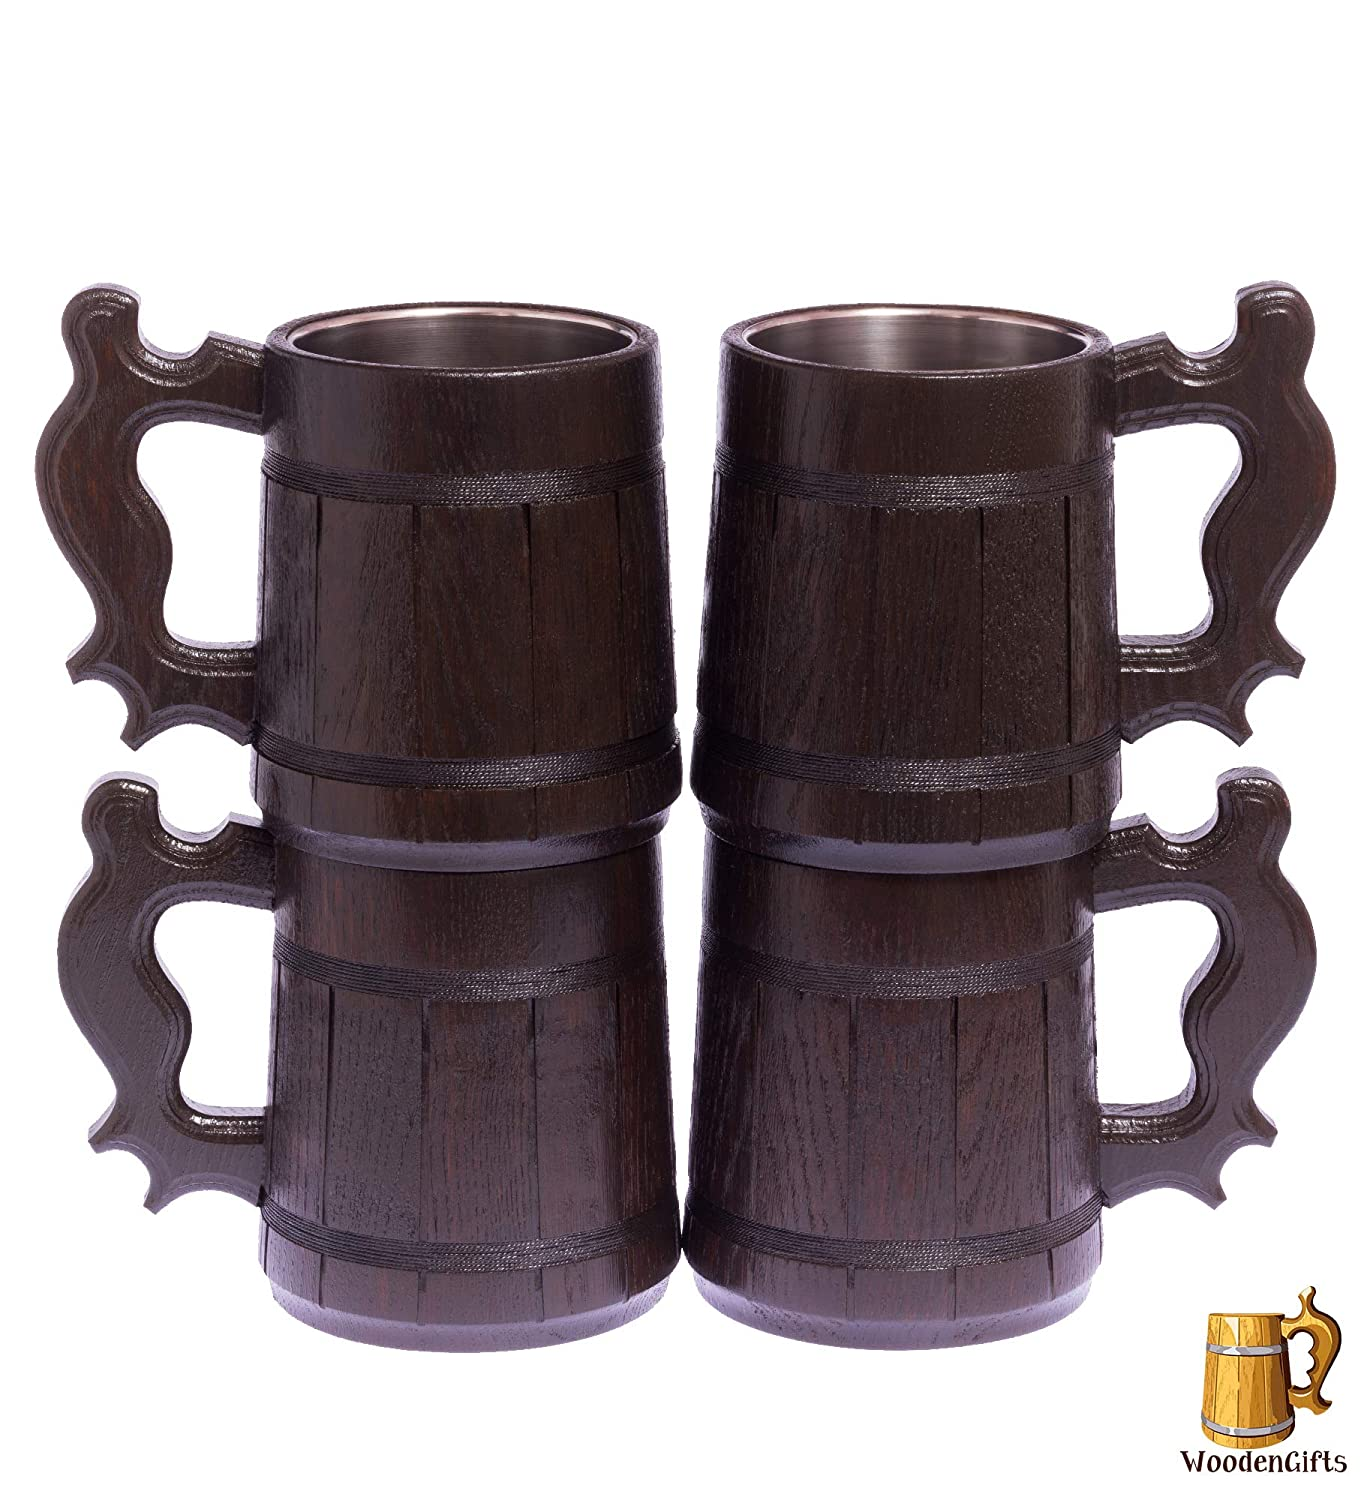 Beer Stein/Beer Mug/Tankard / Wooden Beer Mug By WoodenGifts - 0.6 Litres Or 20oz Wooden Mug - Rustic Barrel Design - Stainless Steel Cup (Beige)